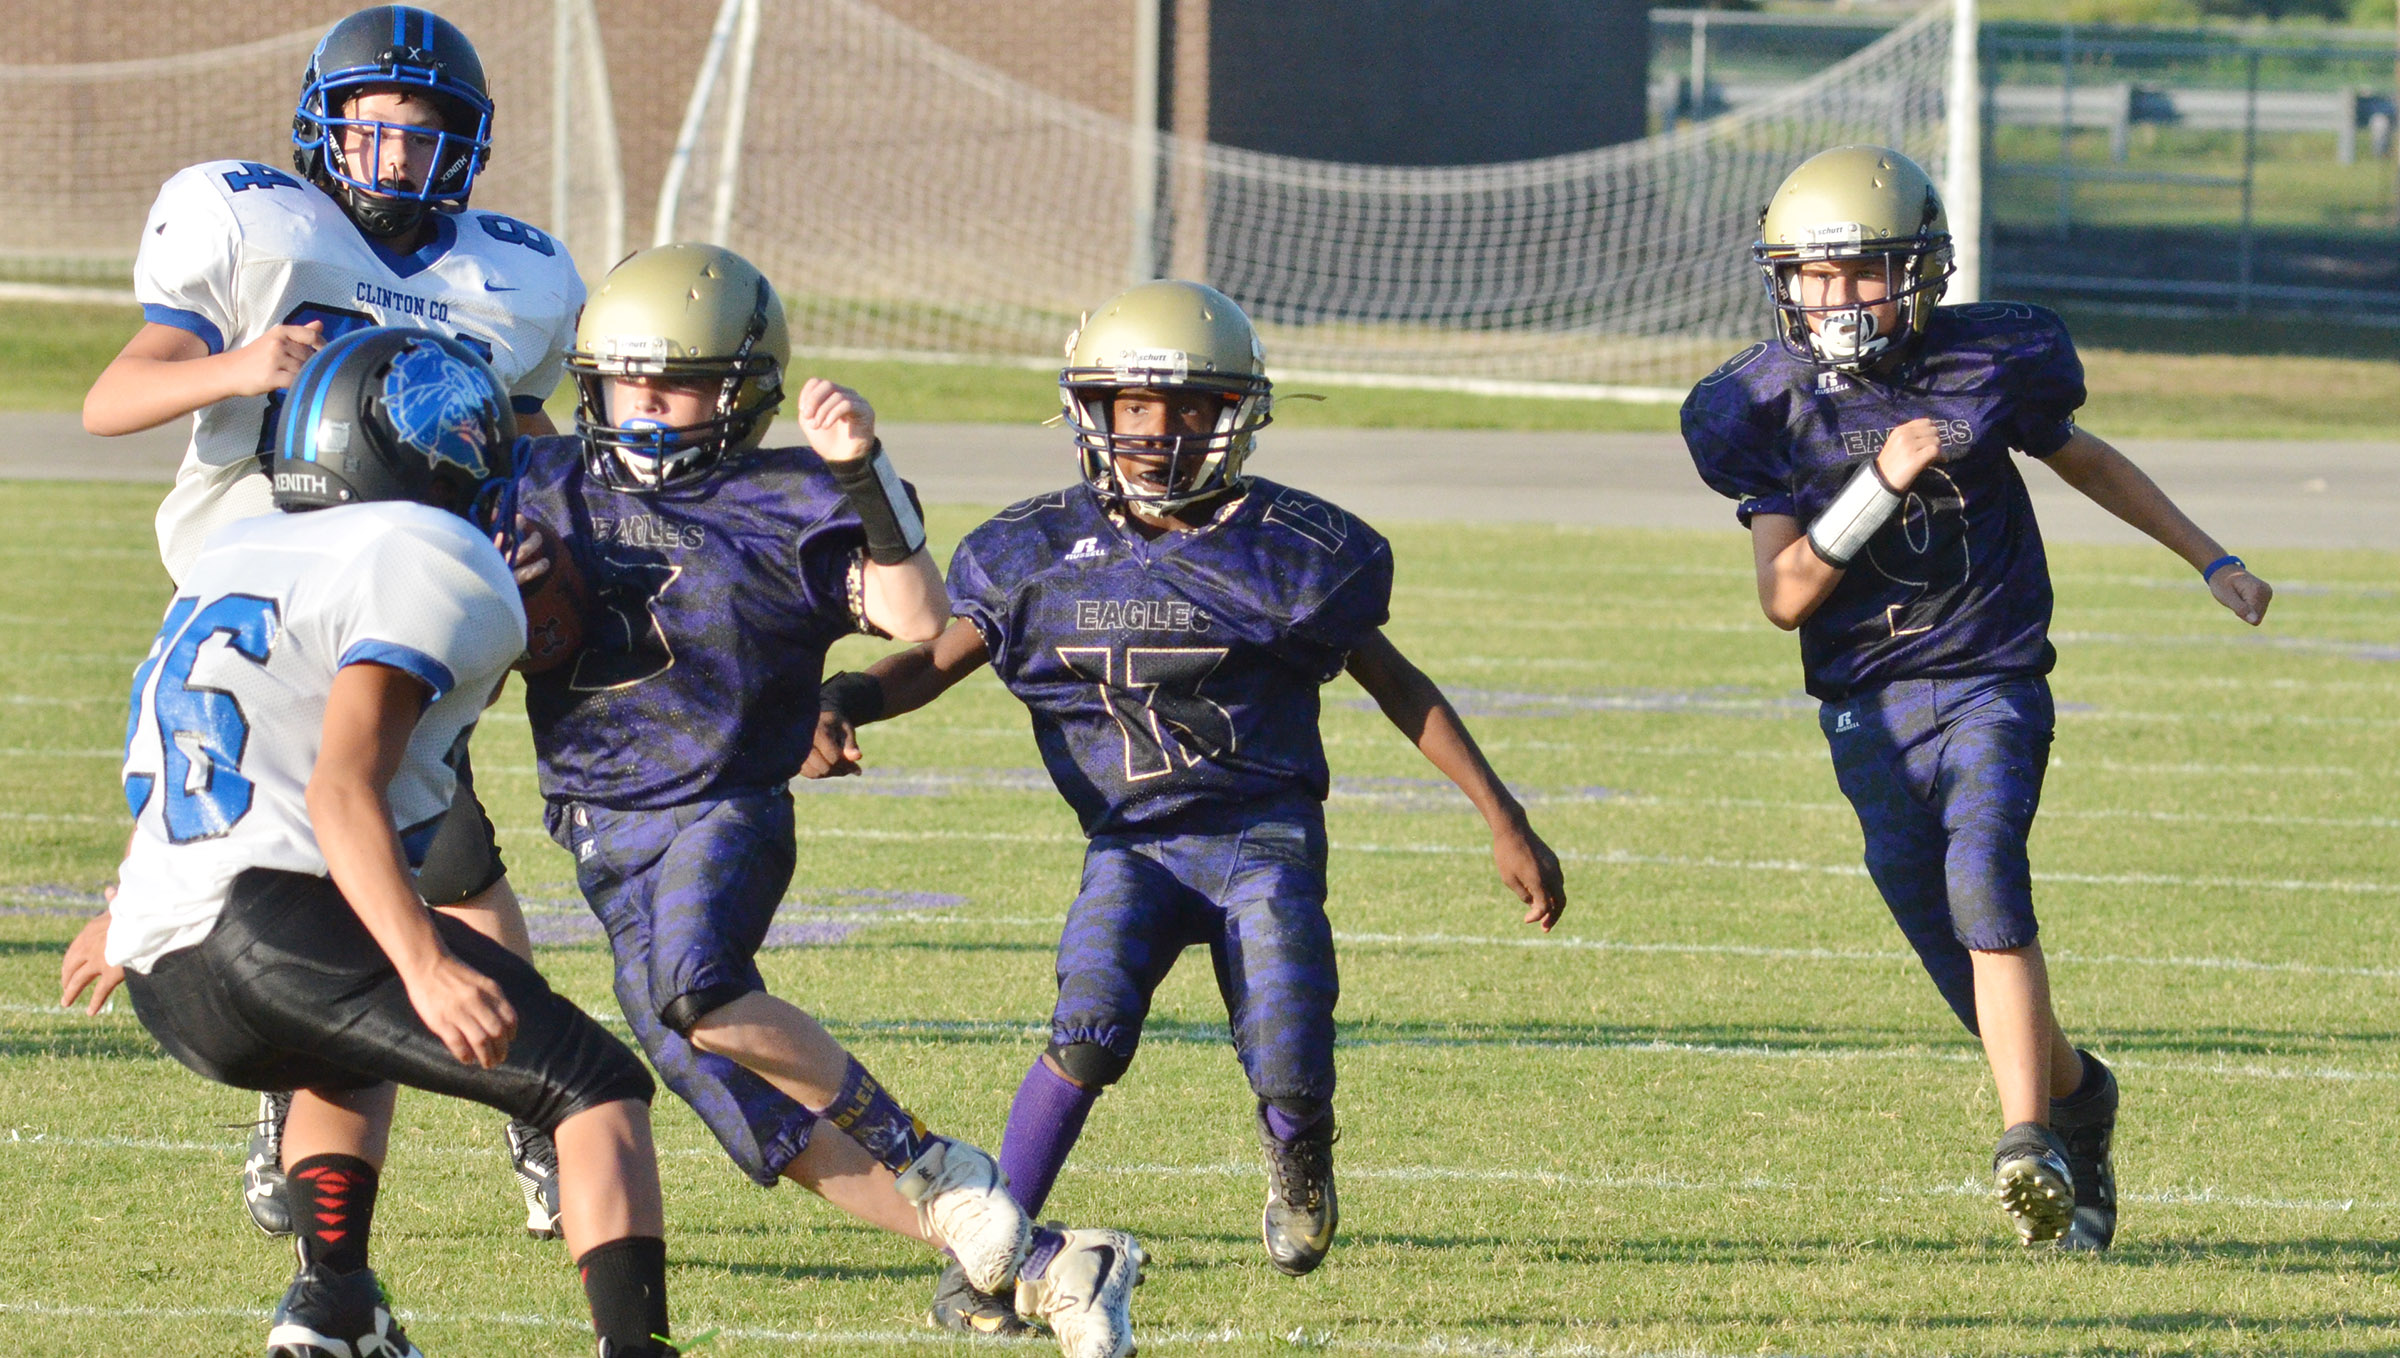 From left, CMS eighth-grader Tuff Harper runs the ball as classmate Jadan Furman and seventh-grader Jaxon Sidebottom block for him.